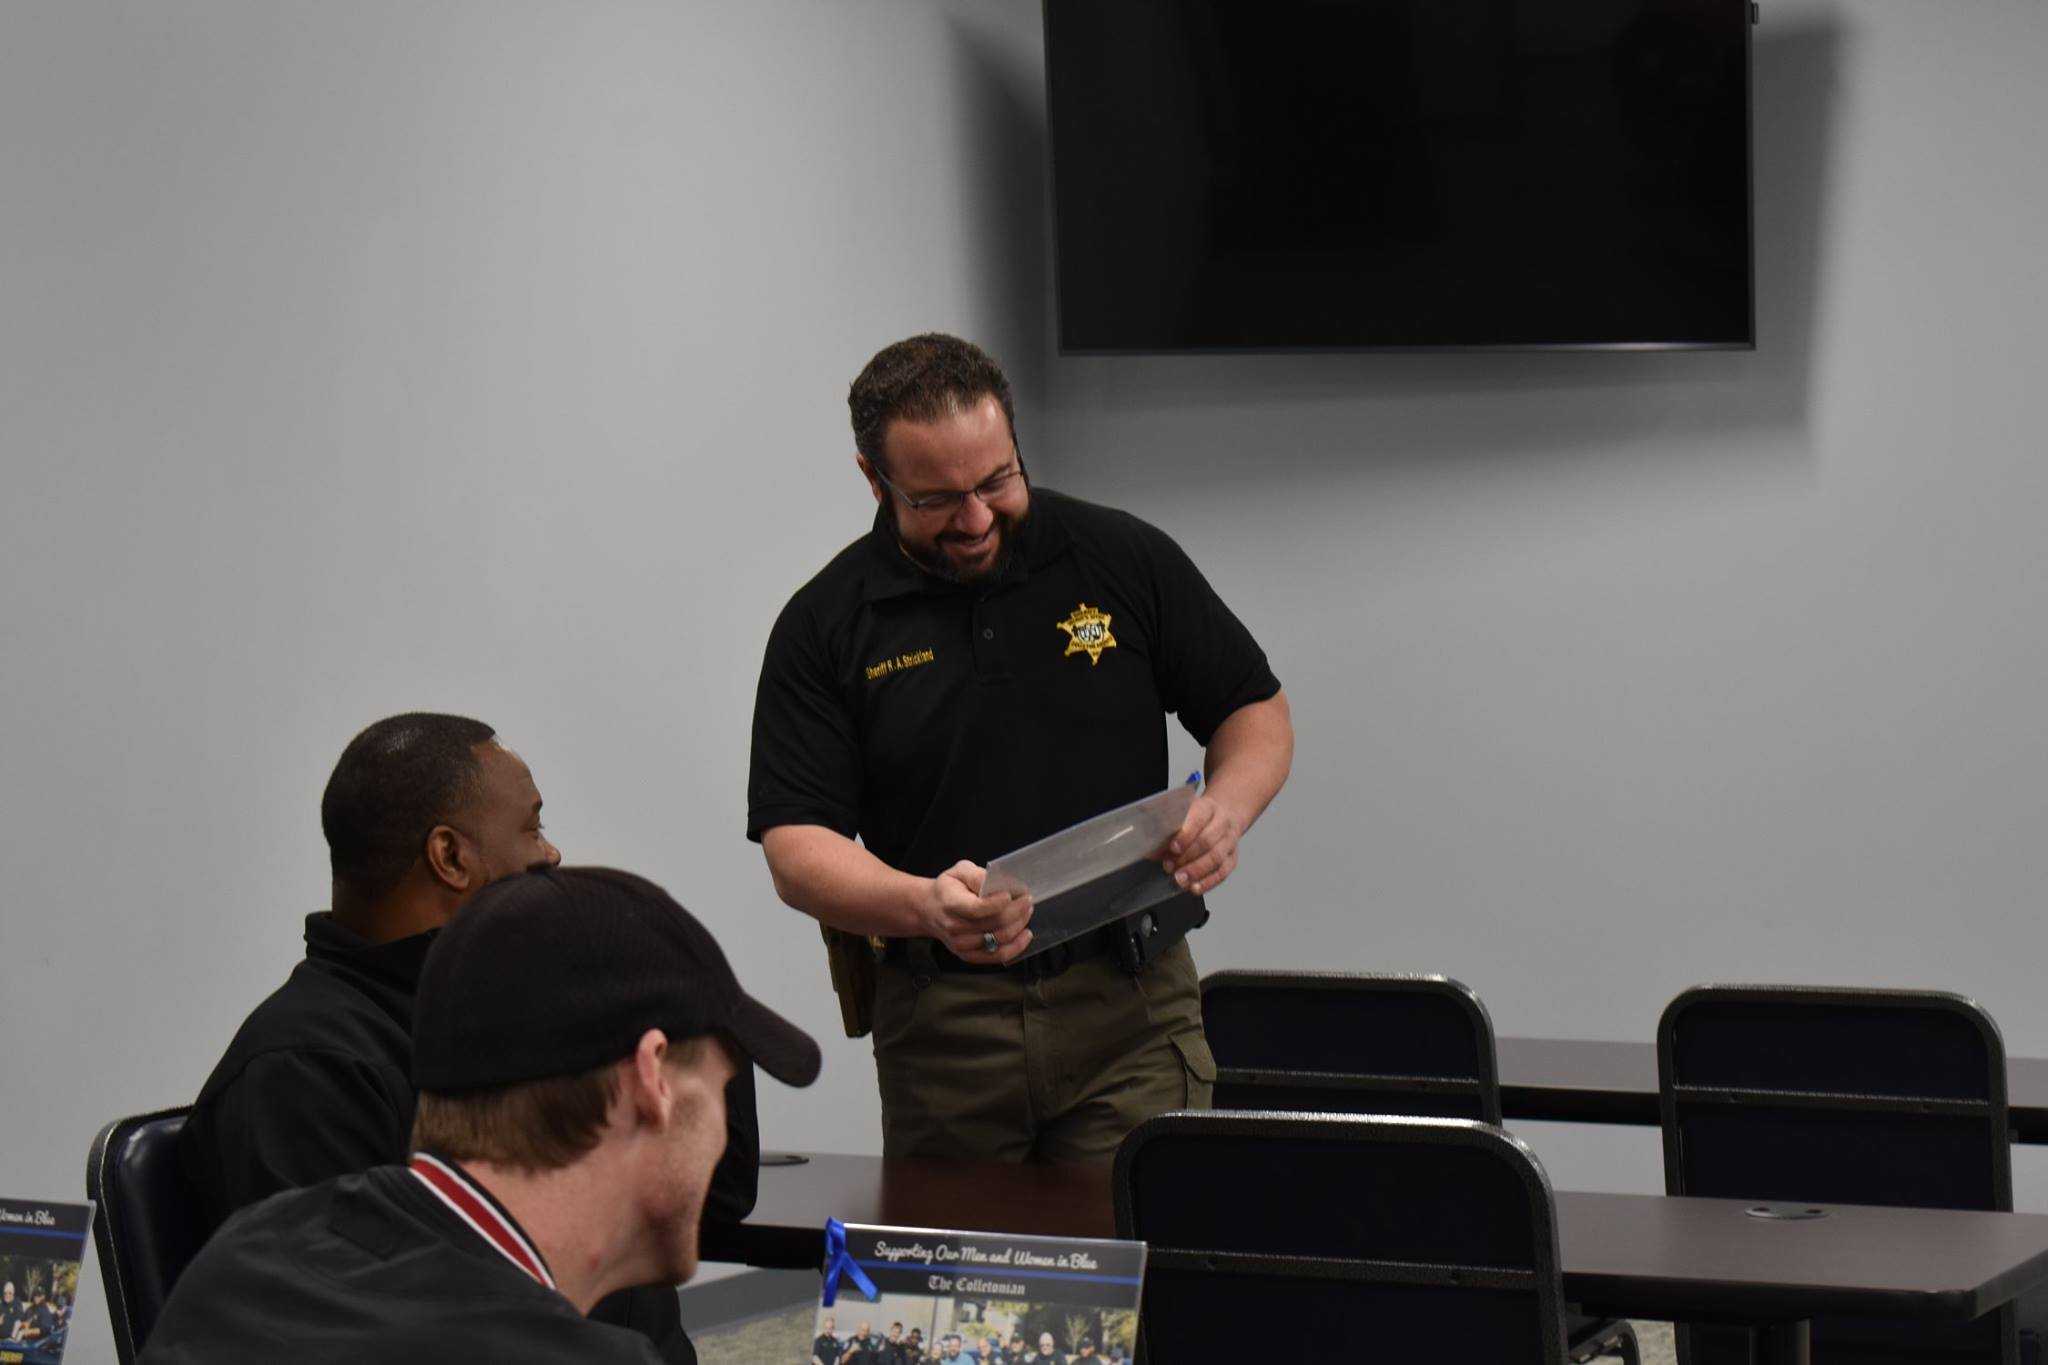 FITSNews – Colleton County South Carolina Sheriff R.A. Strickland Indicted On Multiple Misconduct Charges